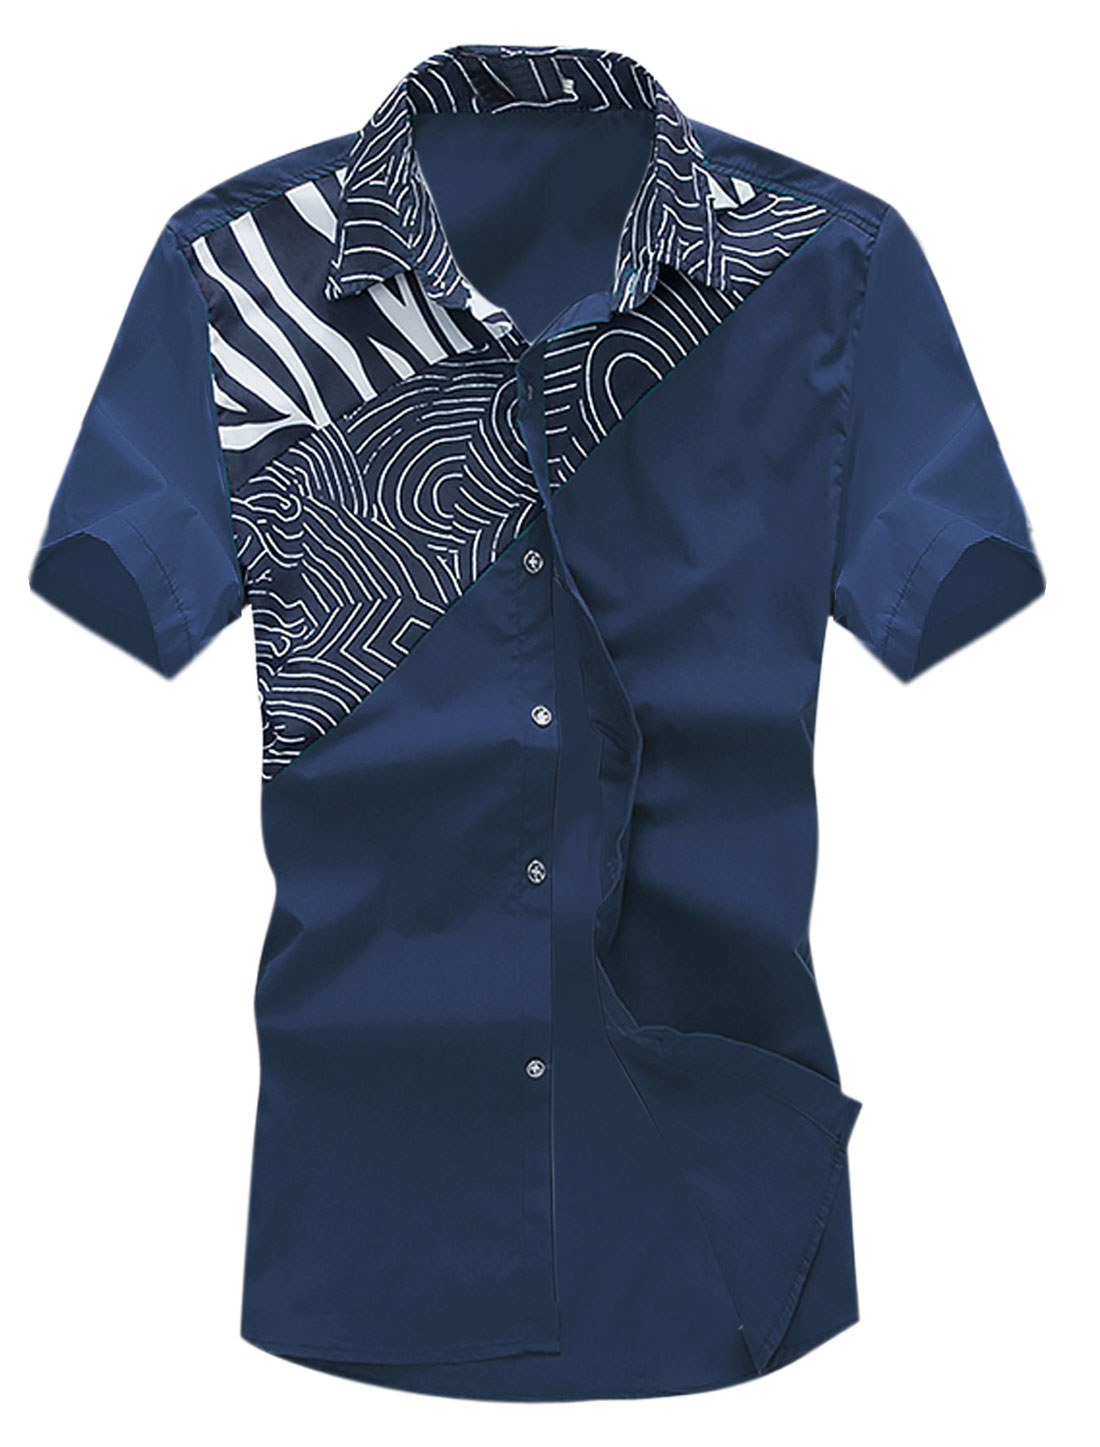 Men Short Sleeve Point Collar Novelty Prints Casual Shirts Navy Blue M